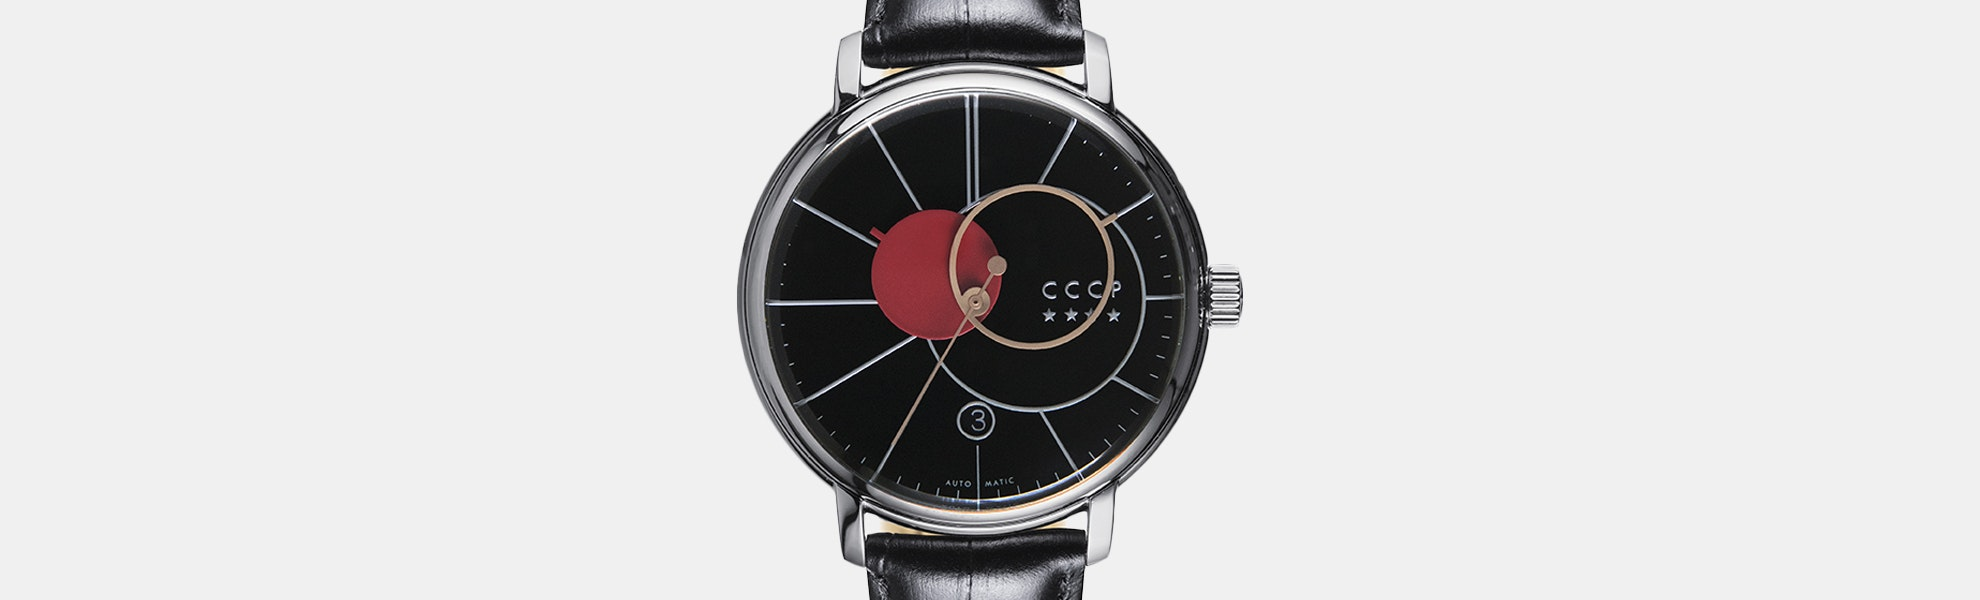 CCCP Friedmann CP-7044 Automatic Watch